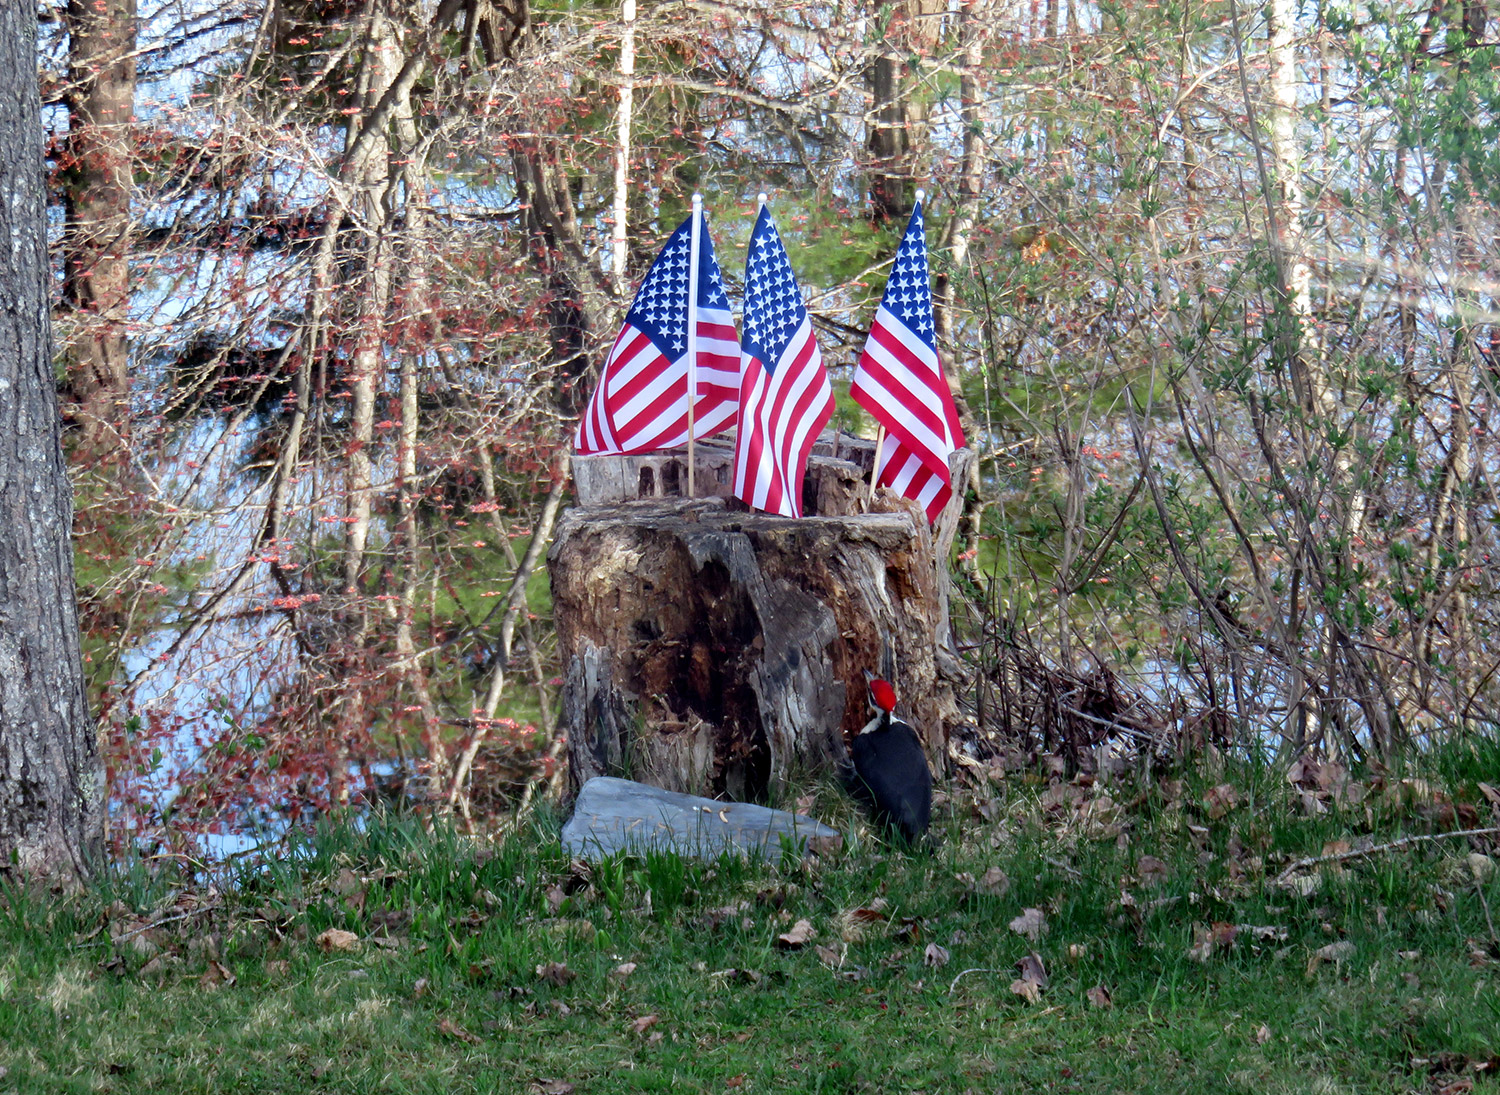 A male pileated woodpecker seems enchanted by the flags displayed in a tree stump by Cathy Wilkie Conley at her home on Estes Lake in Alfred.